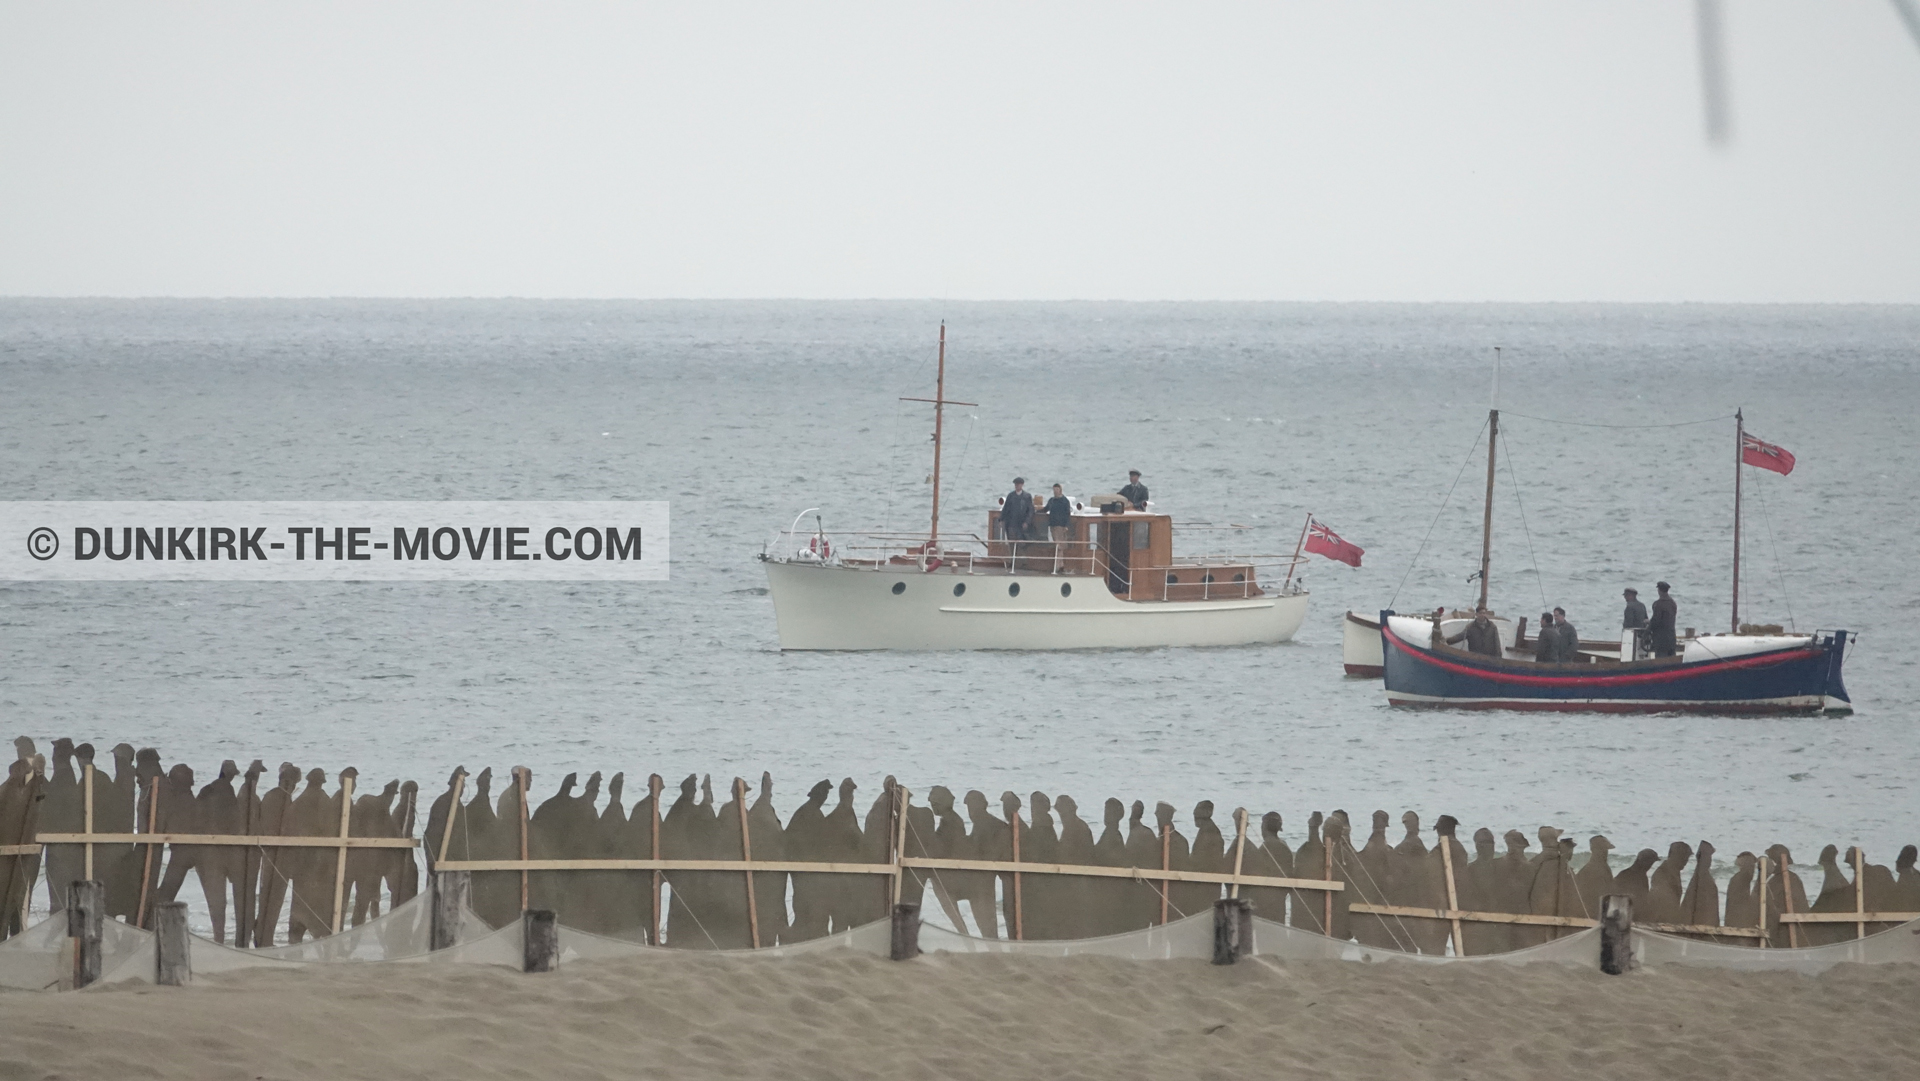 Picture with boat, decor, beach, Henry Finlay lifeboat,  from behind the scene of the Dunkirk movie by Nolan